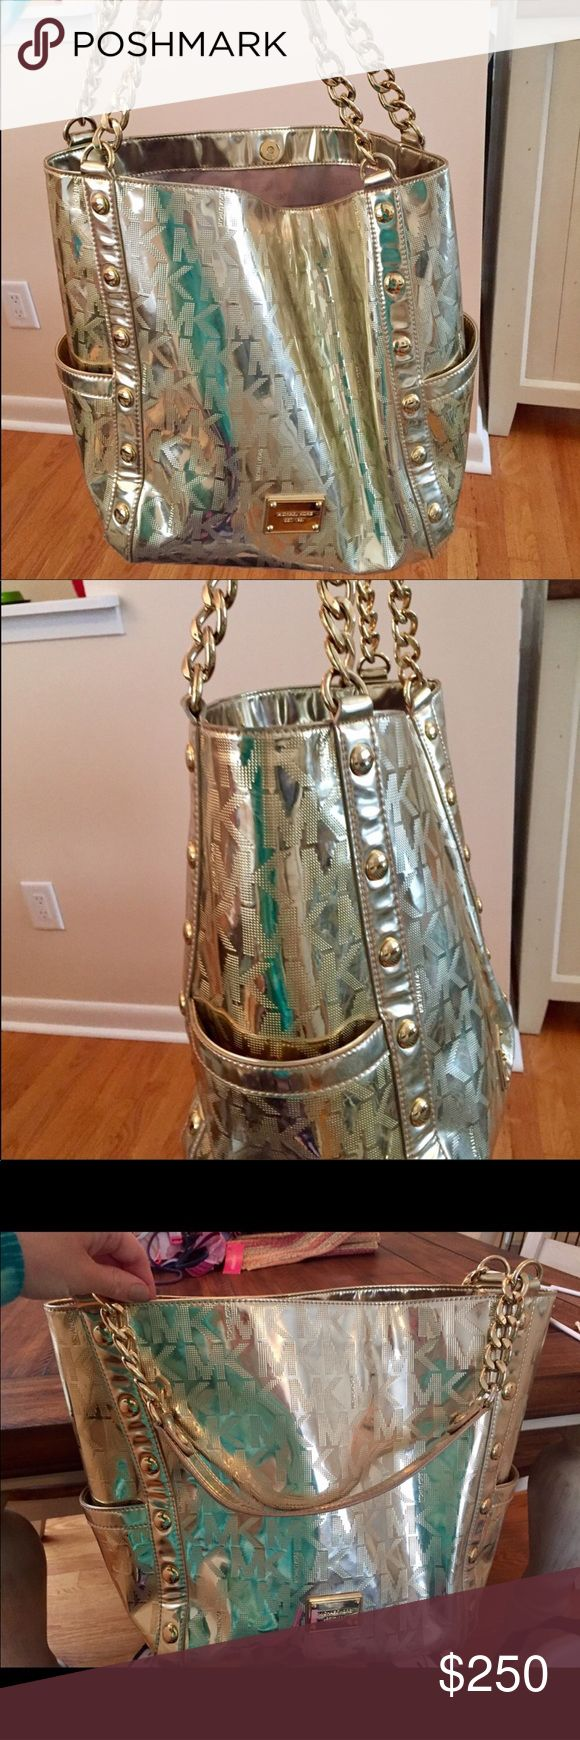 🎉Michael Kors jet set gold bag! 100% Authentic Large gorgeous Michael Kors gold bag. Chain handles. So many compliments on this bag!! Michael Kors Bags Shoulder Bags